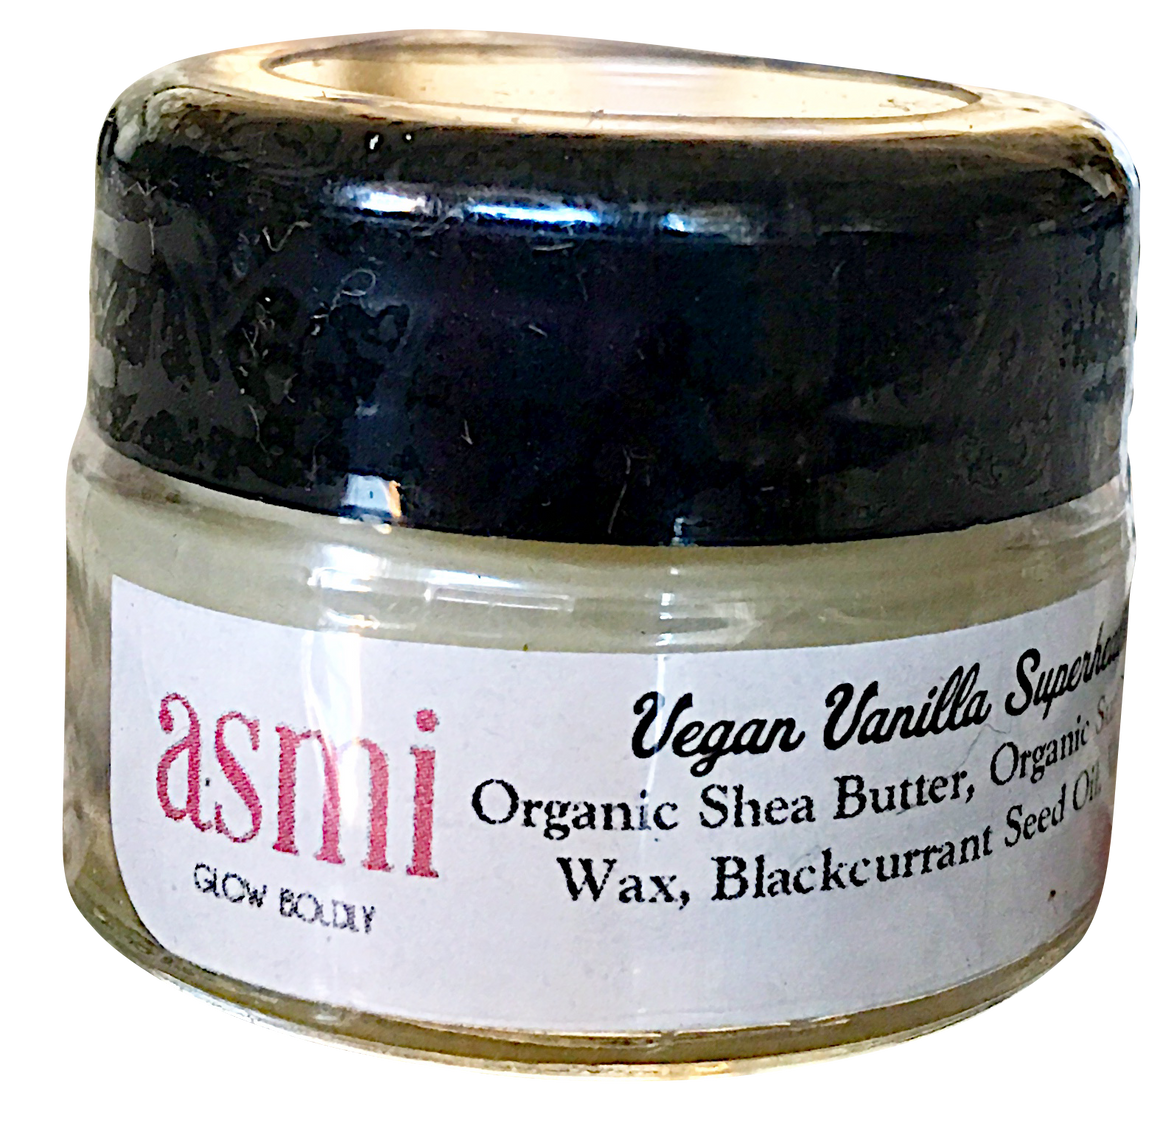 Vegan Vanilla Superhealing Lip Balm (0.25 oz) PLUS Cuticle Cream